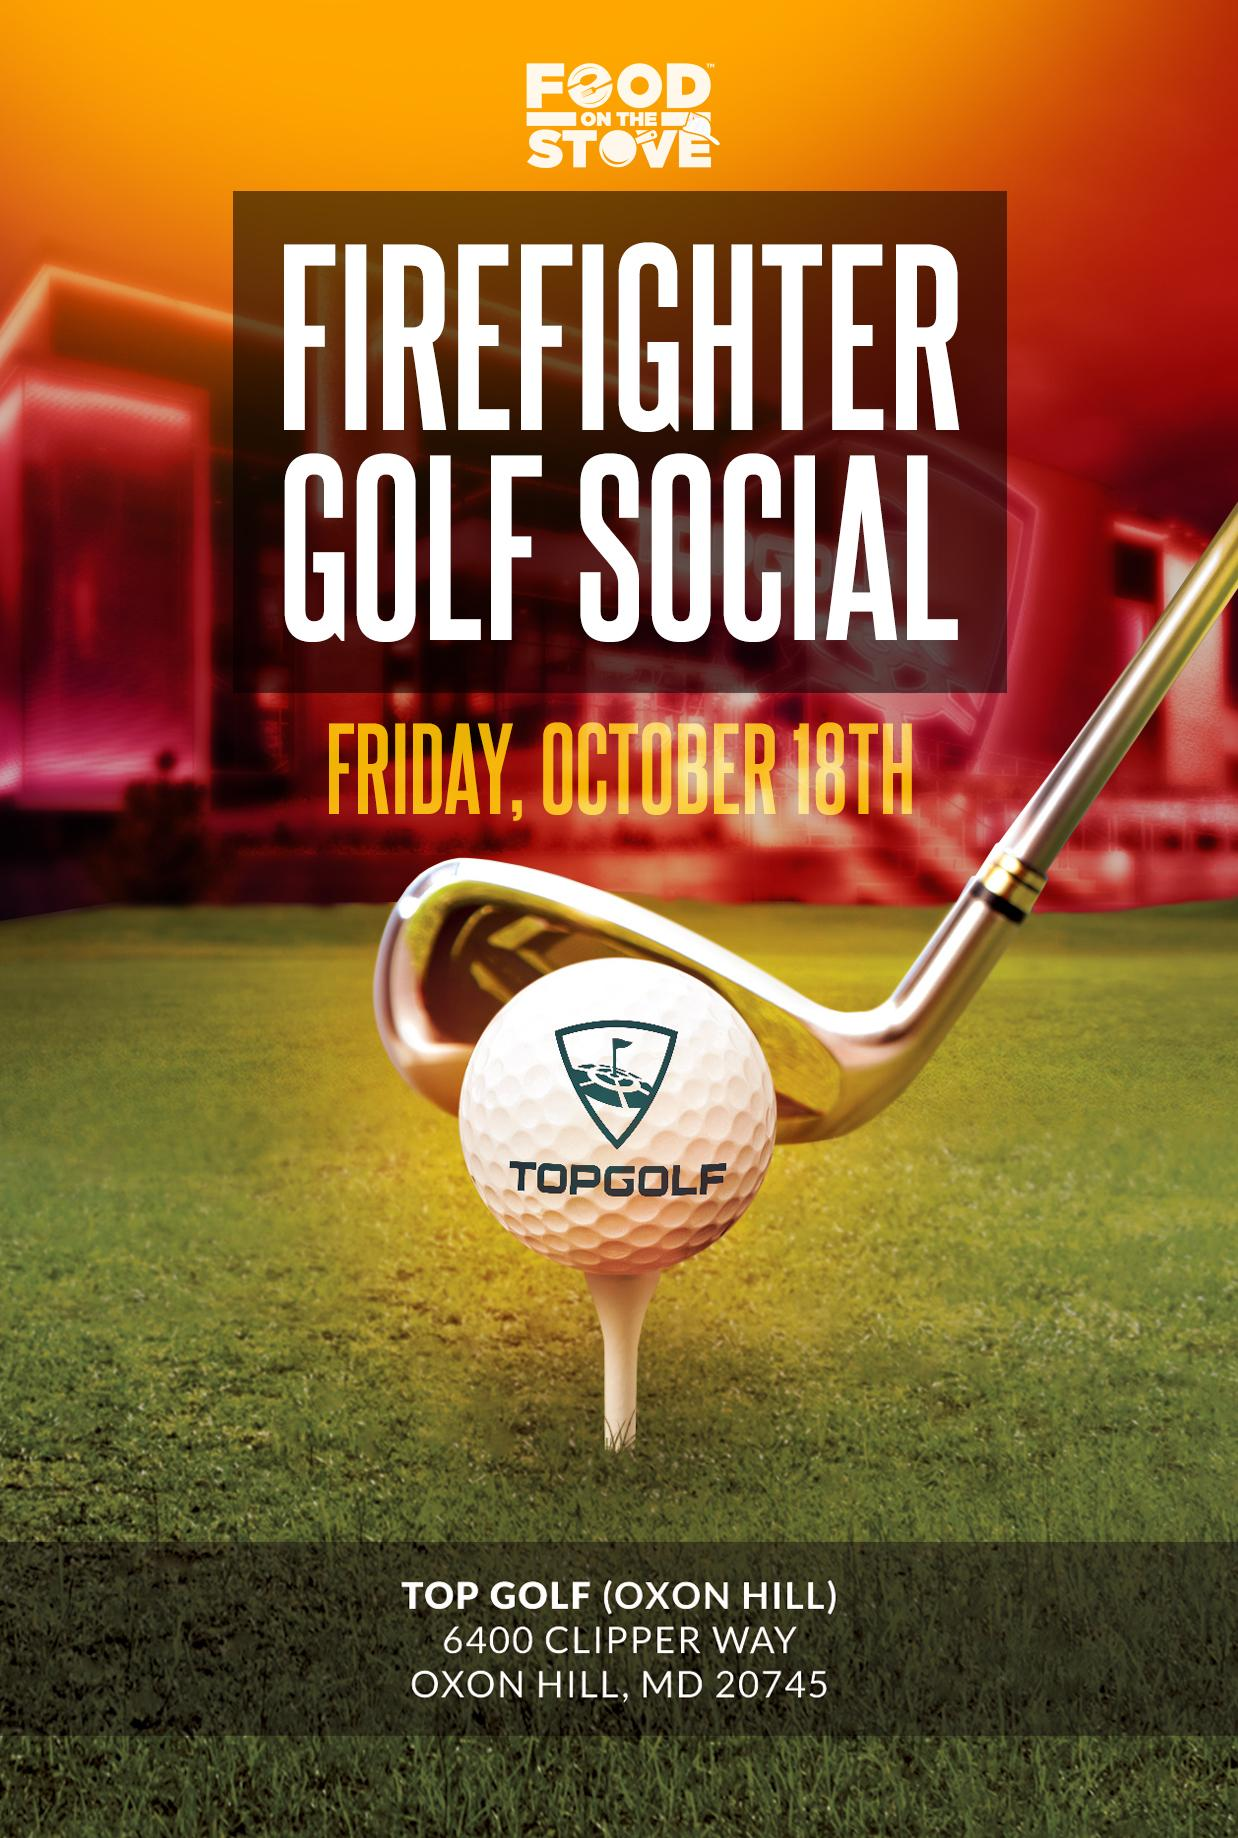 Firefighter Golf Social